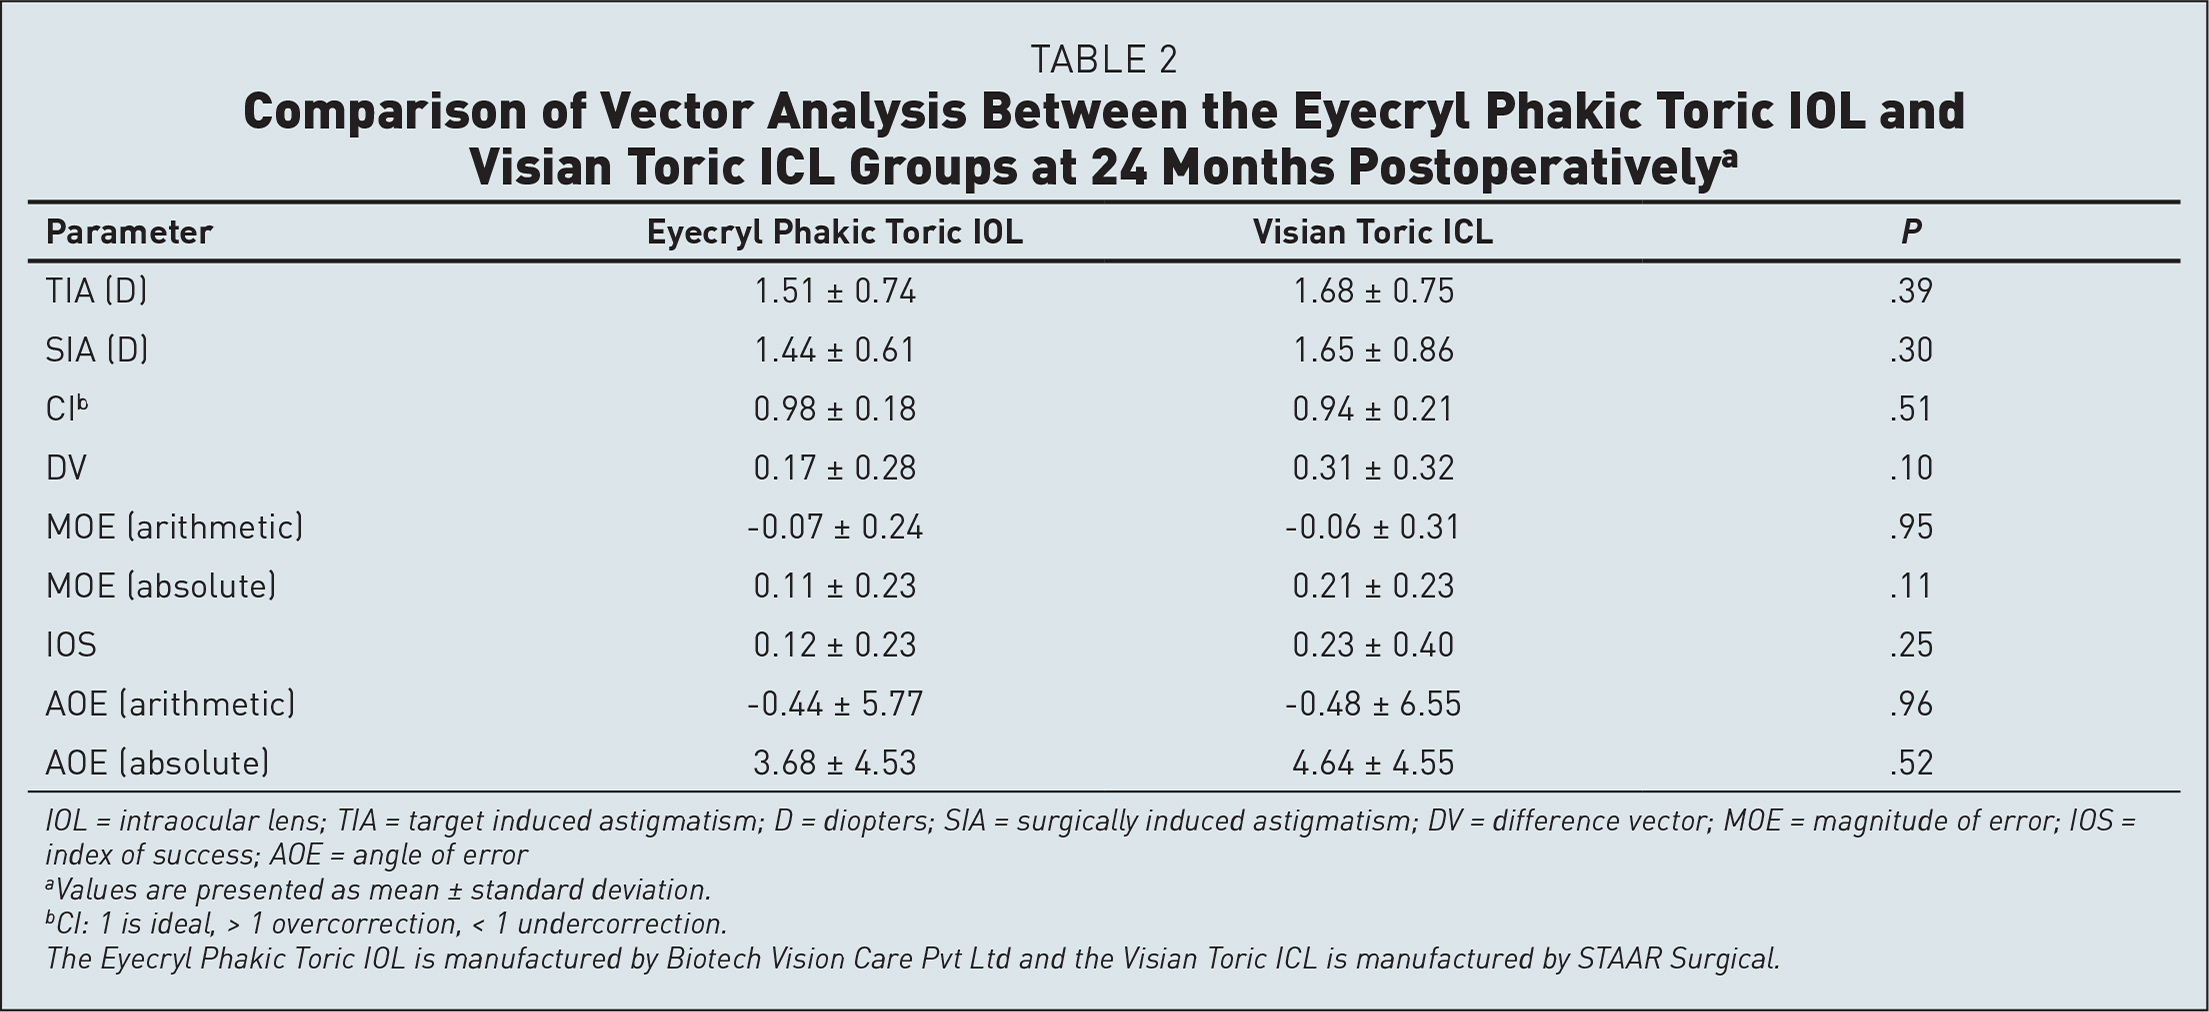 Comparison of Vector Analysis Between the Eyecryl Phakic Toric IOL and Visian Toric ICL Groups at 24 Months Postoperativelya